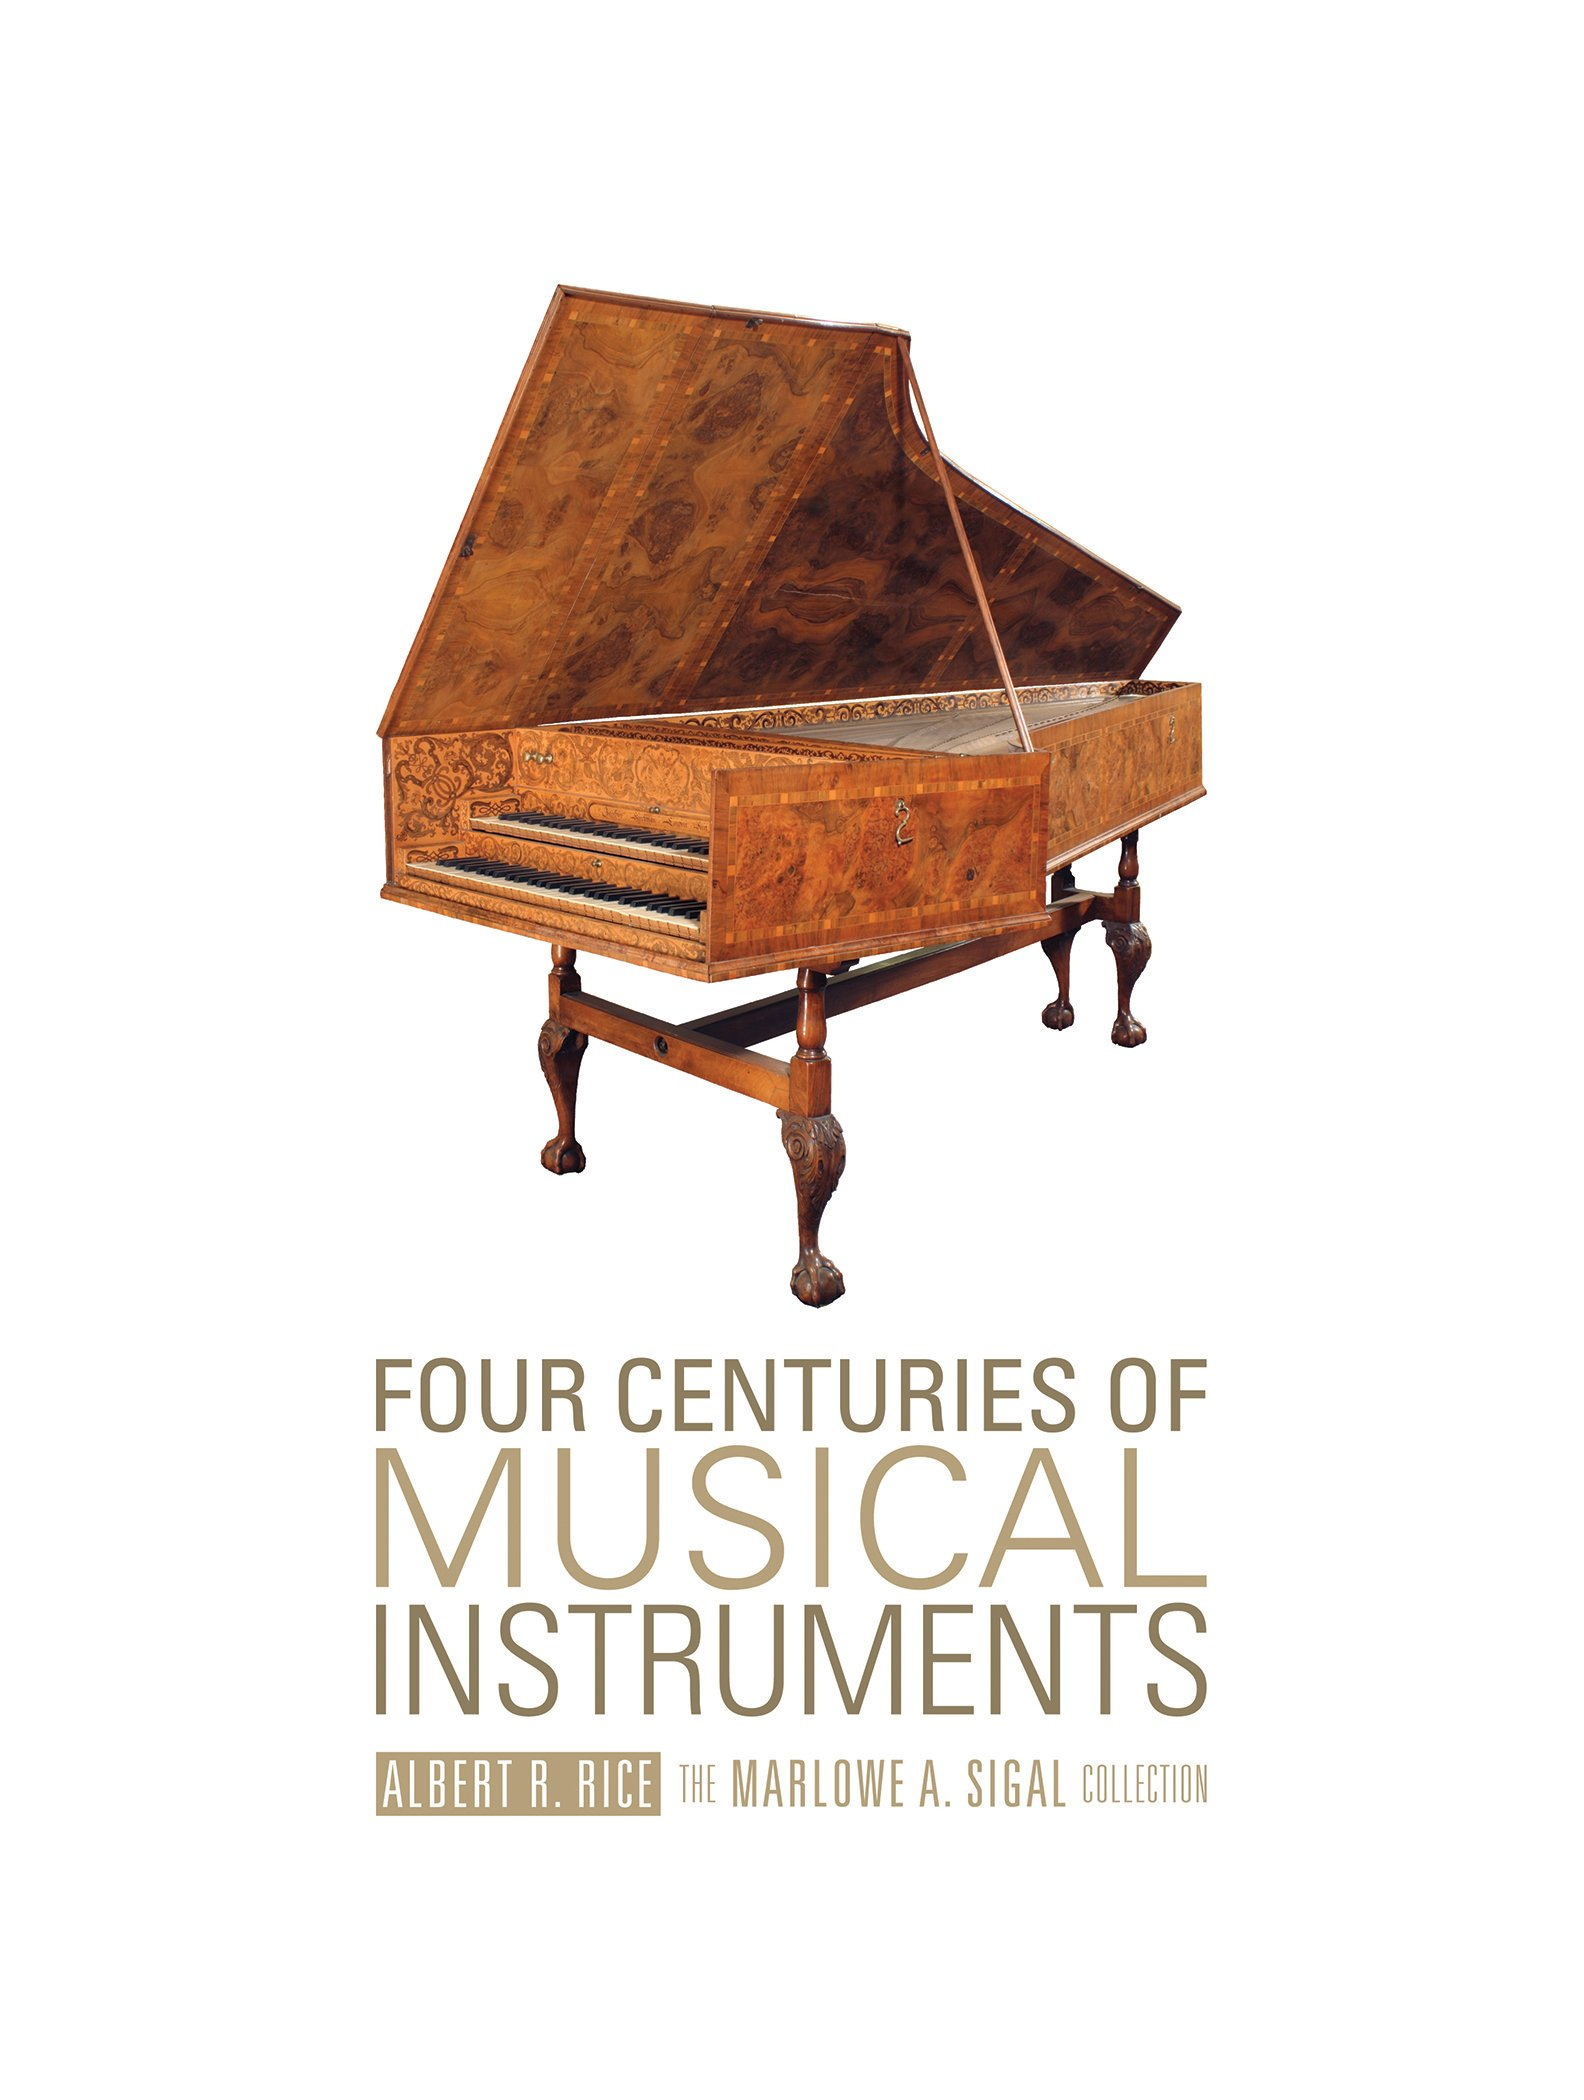 Four Centuries Of Musical Instruments  The Marlowe A. Sigal Collection